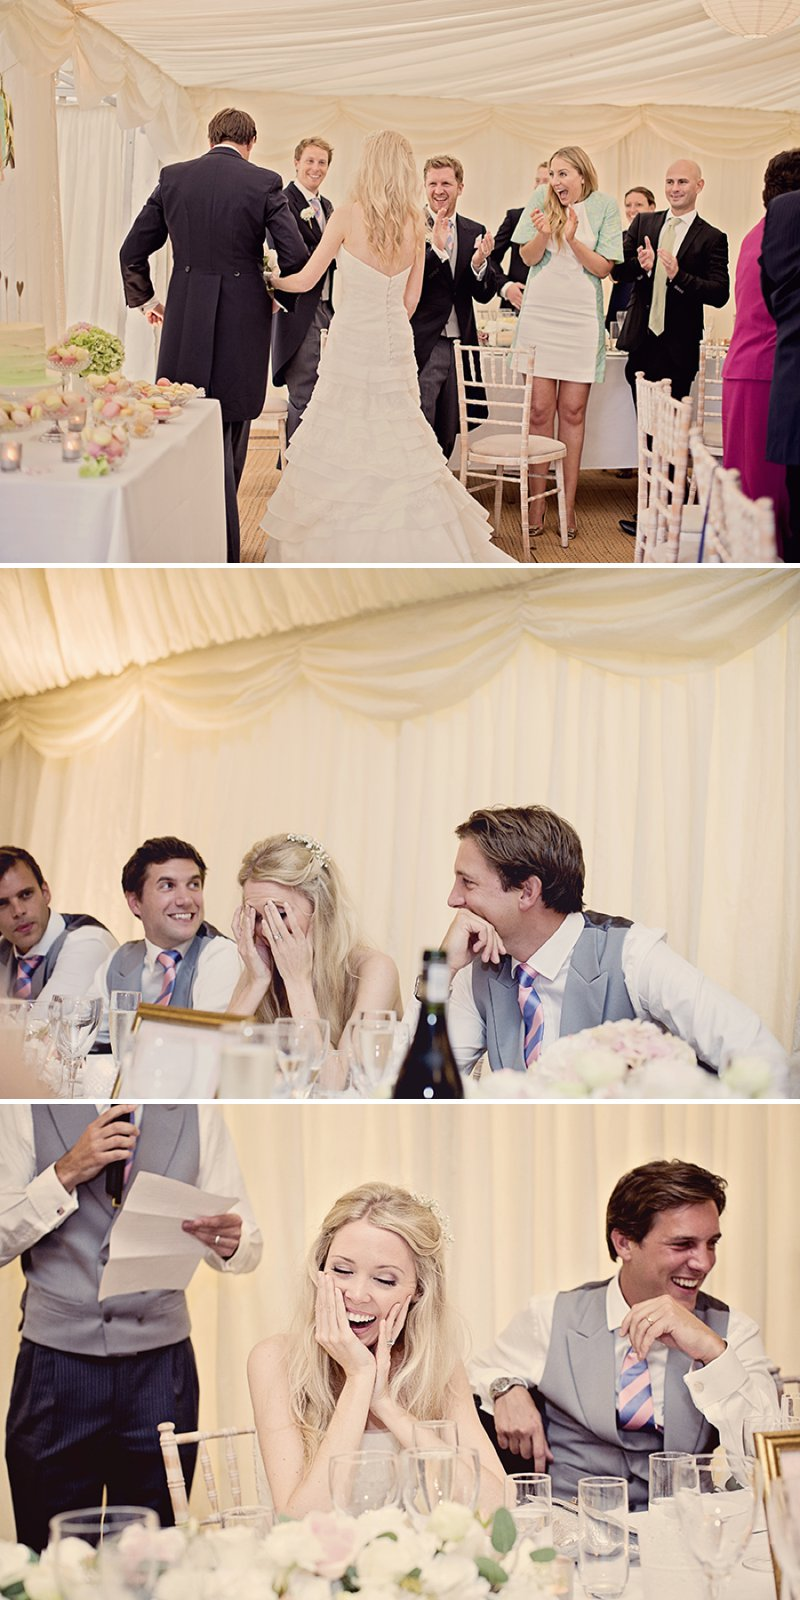 Contemporary Marquee Wedding With A Soft And Romantic Pastel Colour Scheme With Bride In Essense Of Australia Gown And Groom In Tails With Anges De Sucres Macarons And Images By Razia N Jukes Photography 7